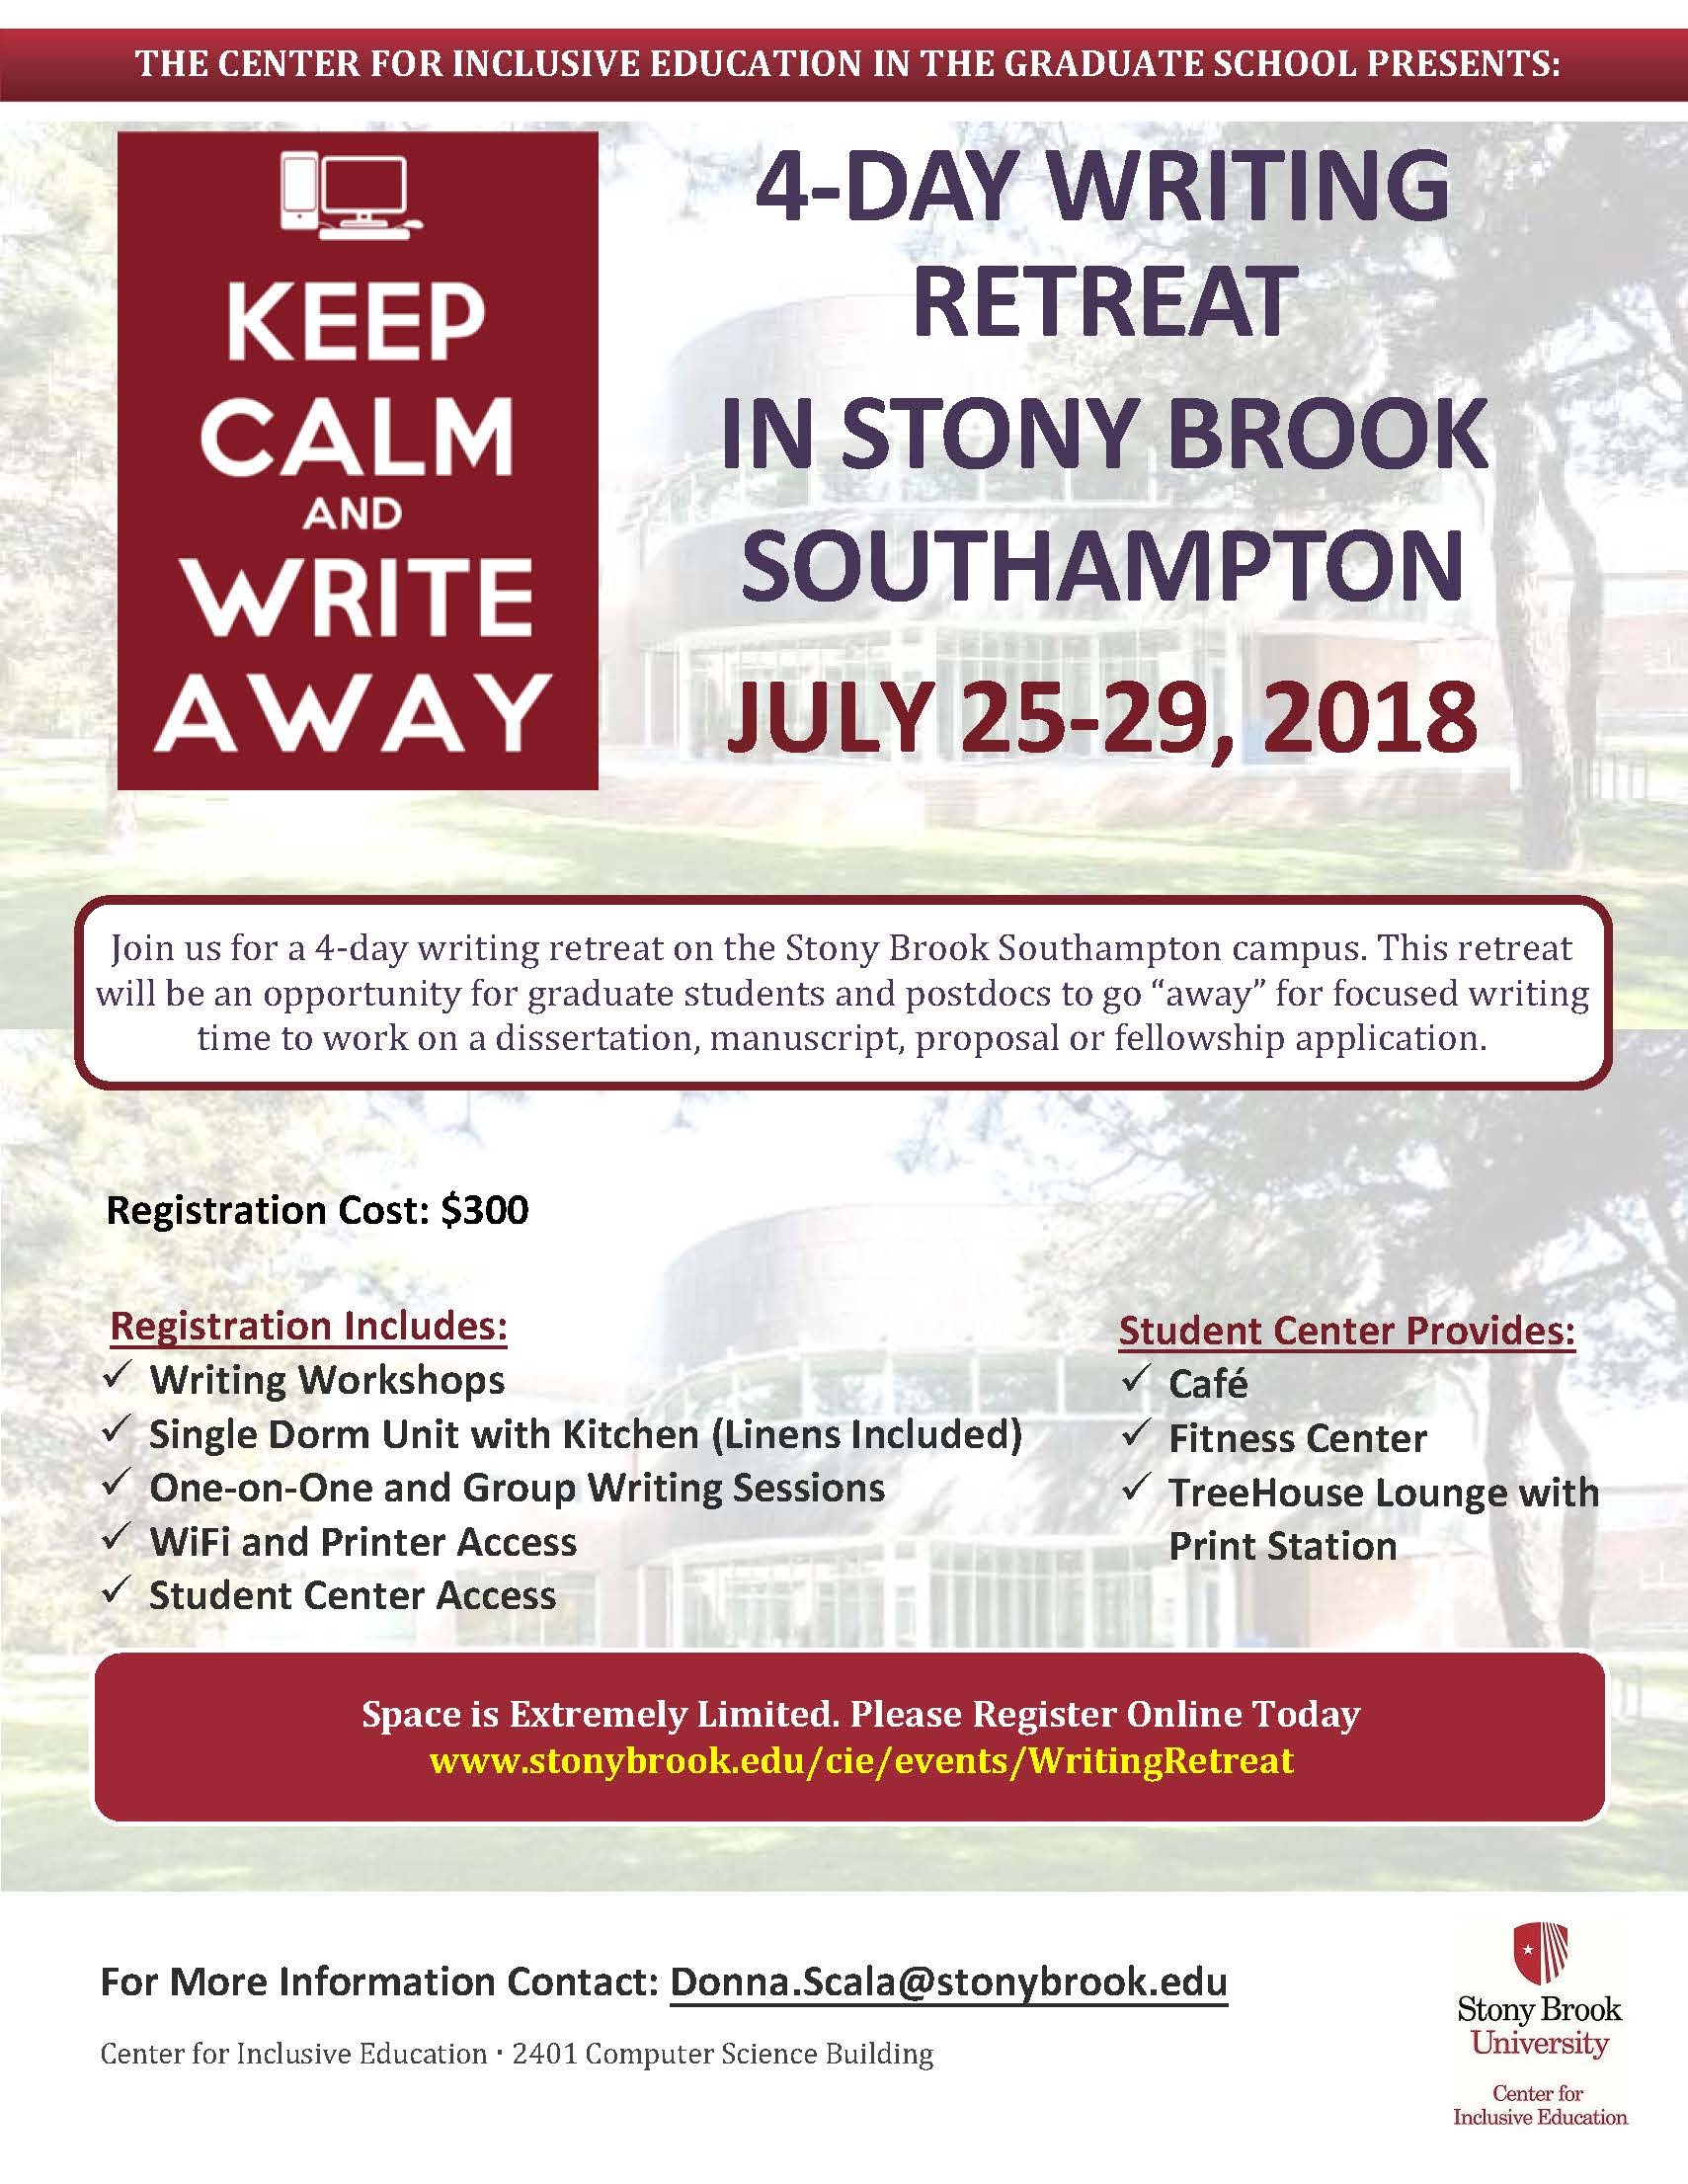 2018 Summer Writing Retreat Flyer